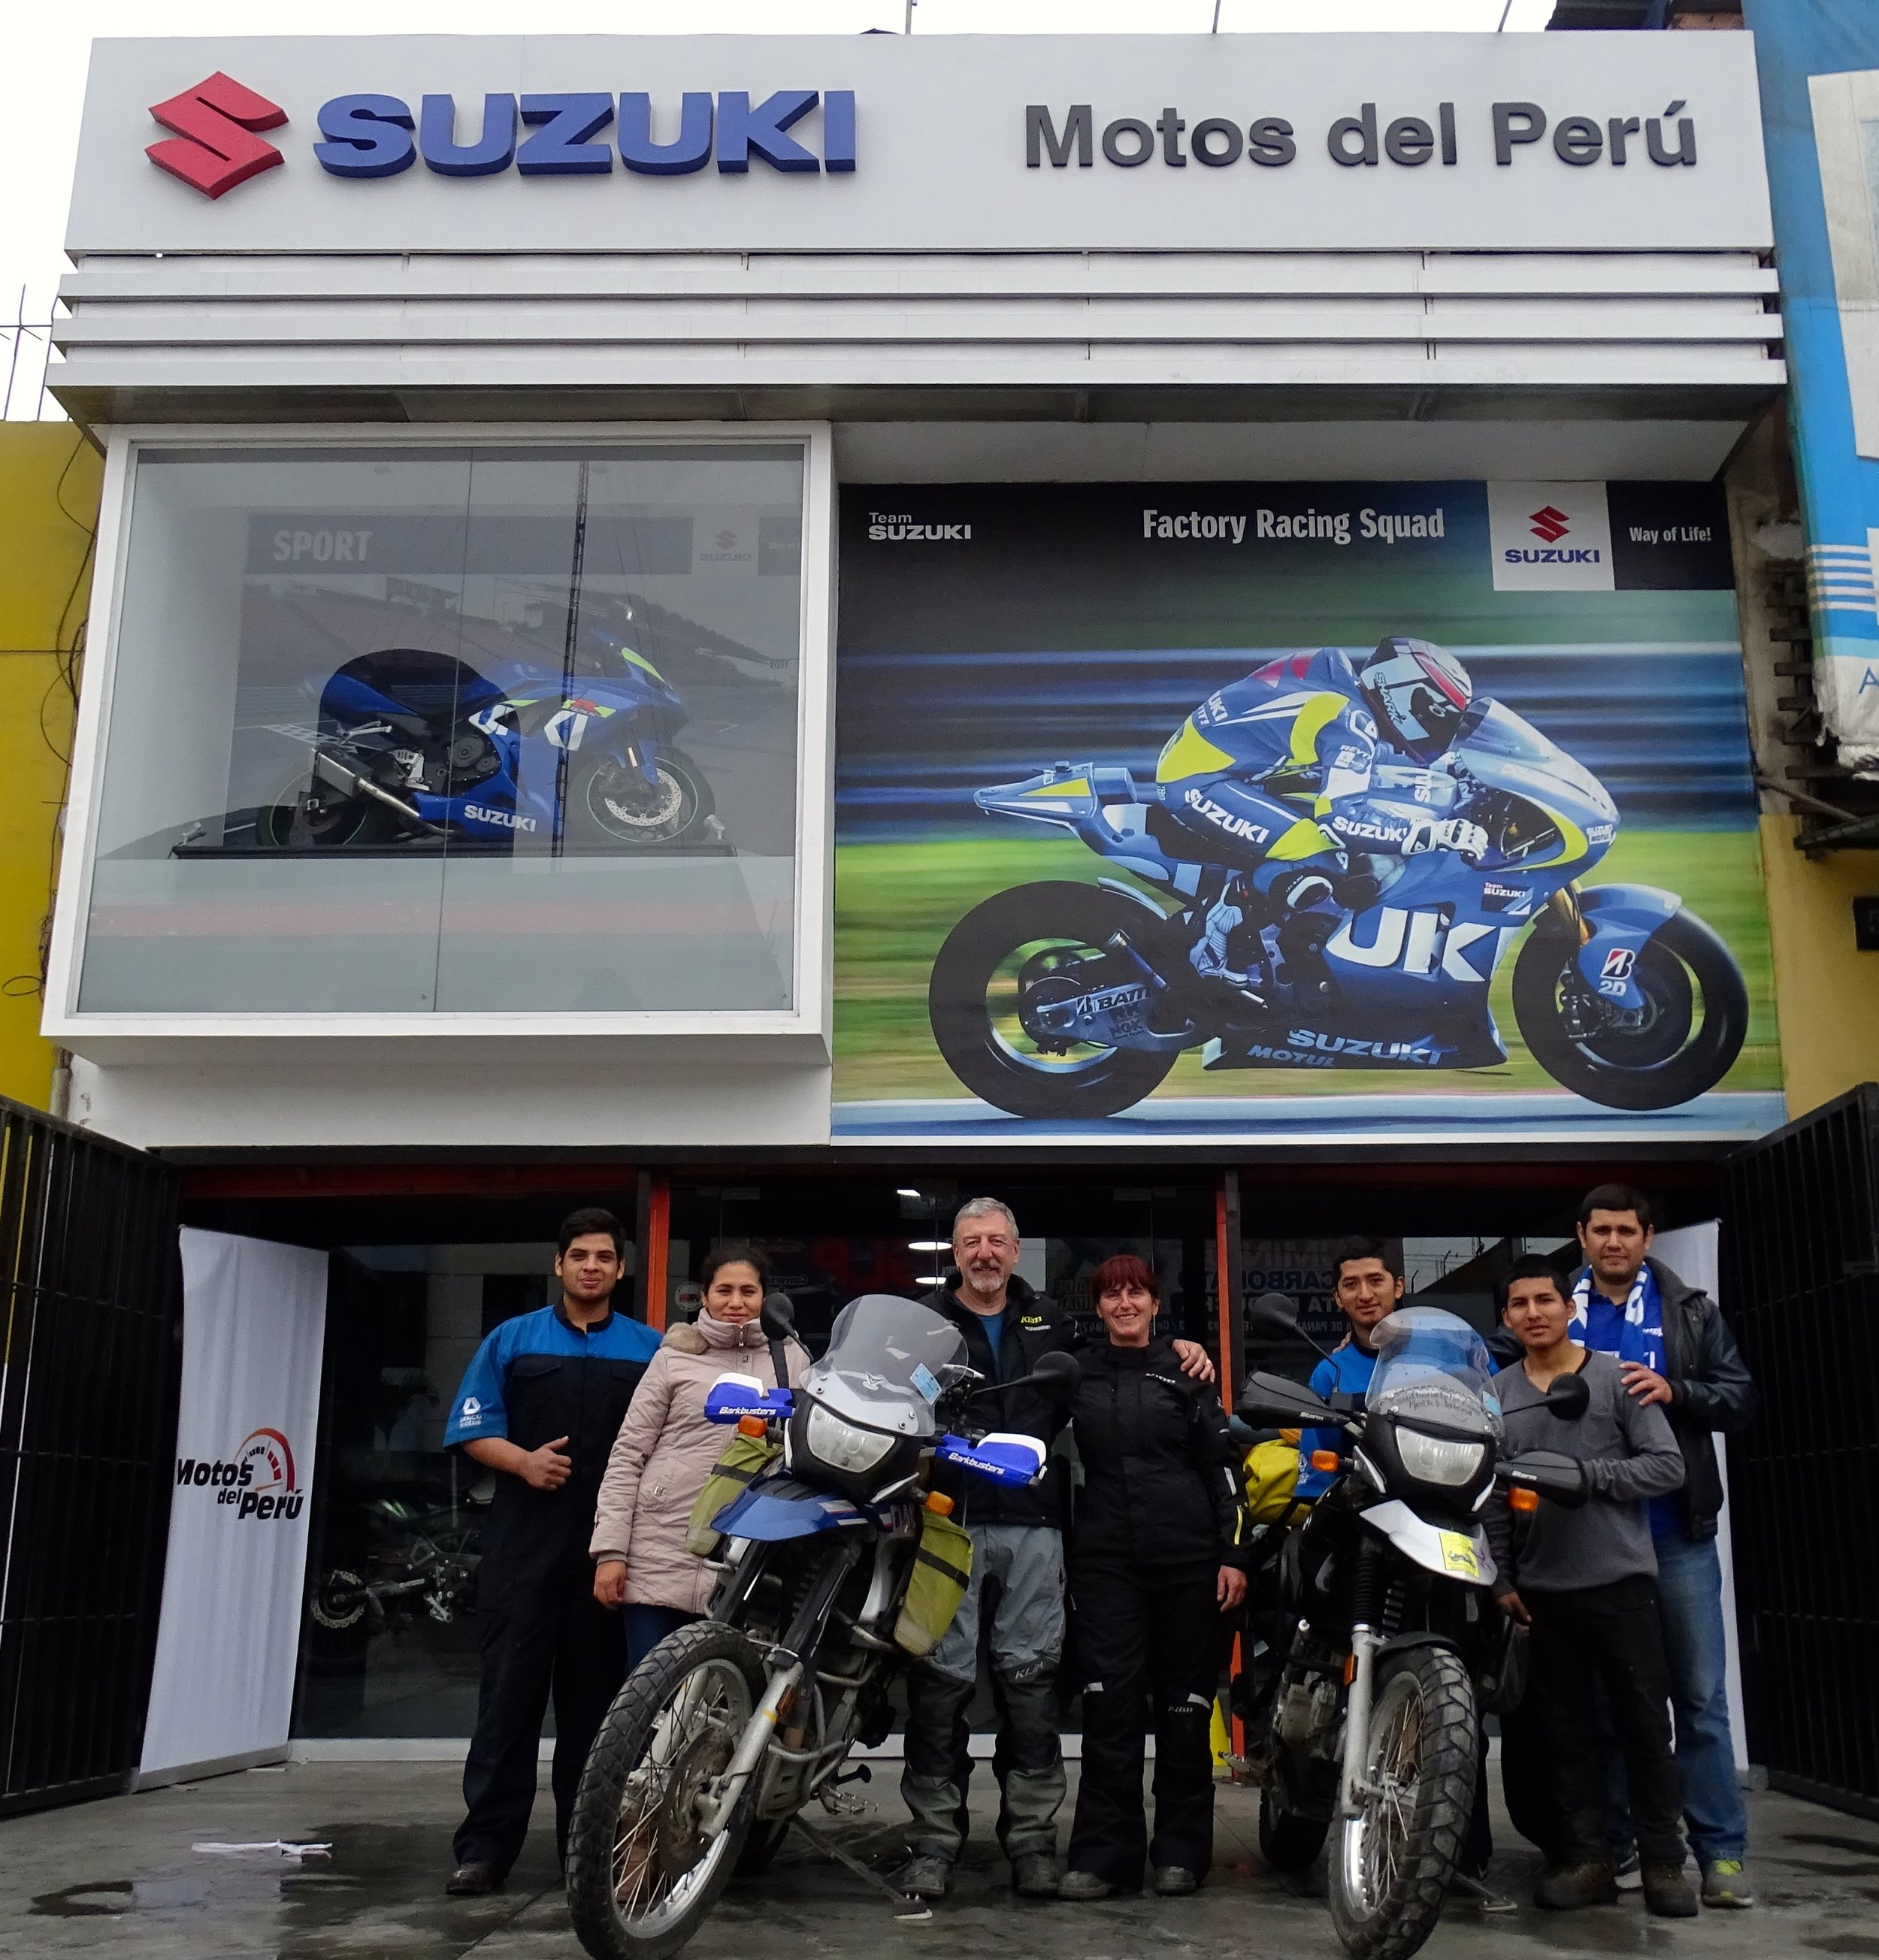 Felipe Miranda and Motos del Peru in Lima gave us an incredible amount of help maintaining the bikes and getting them in shape for the coming trip through southern Peru and Bolivia.